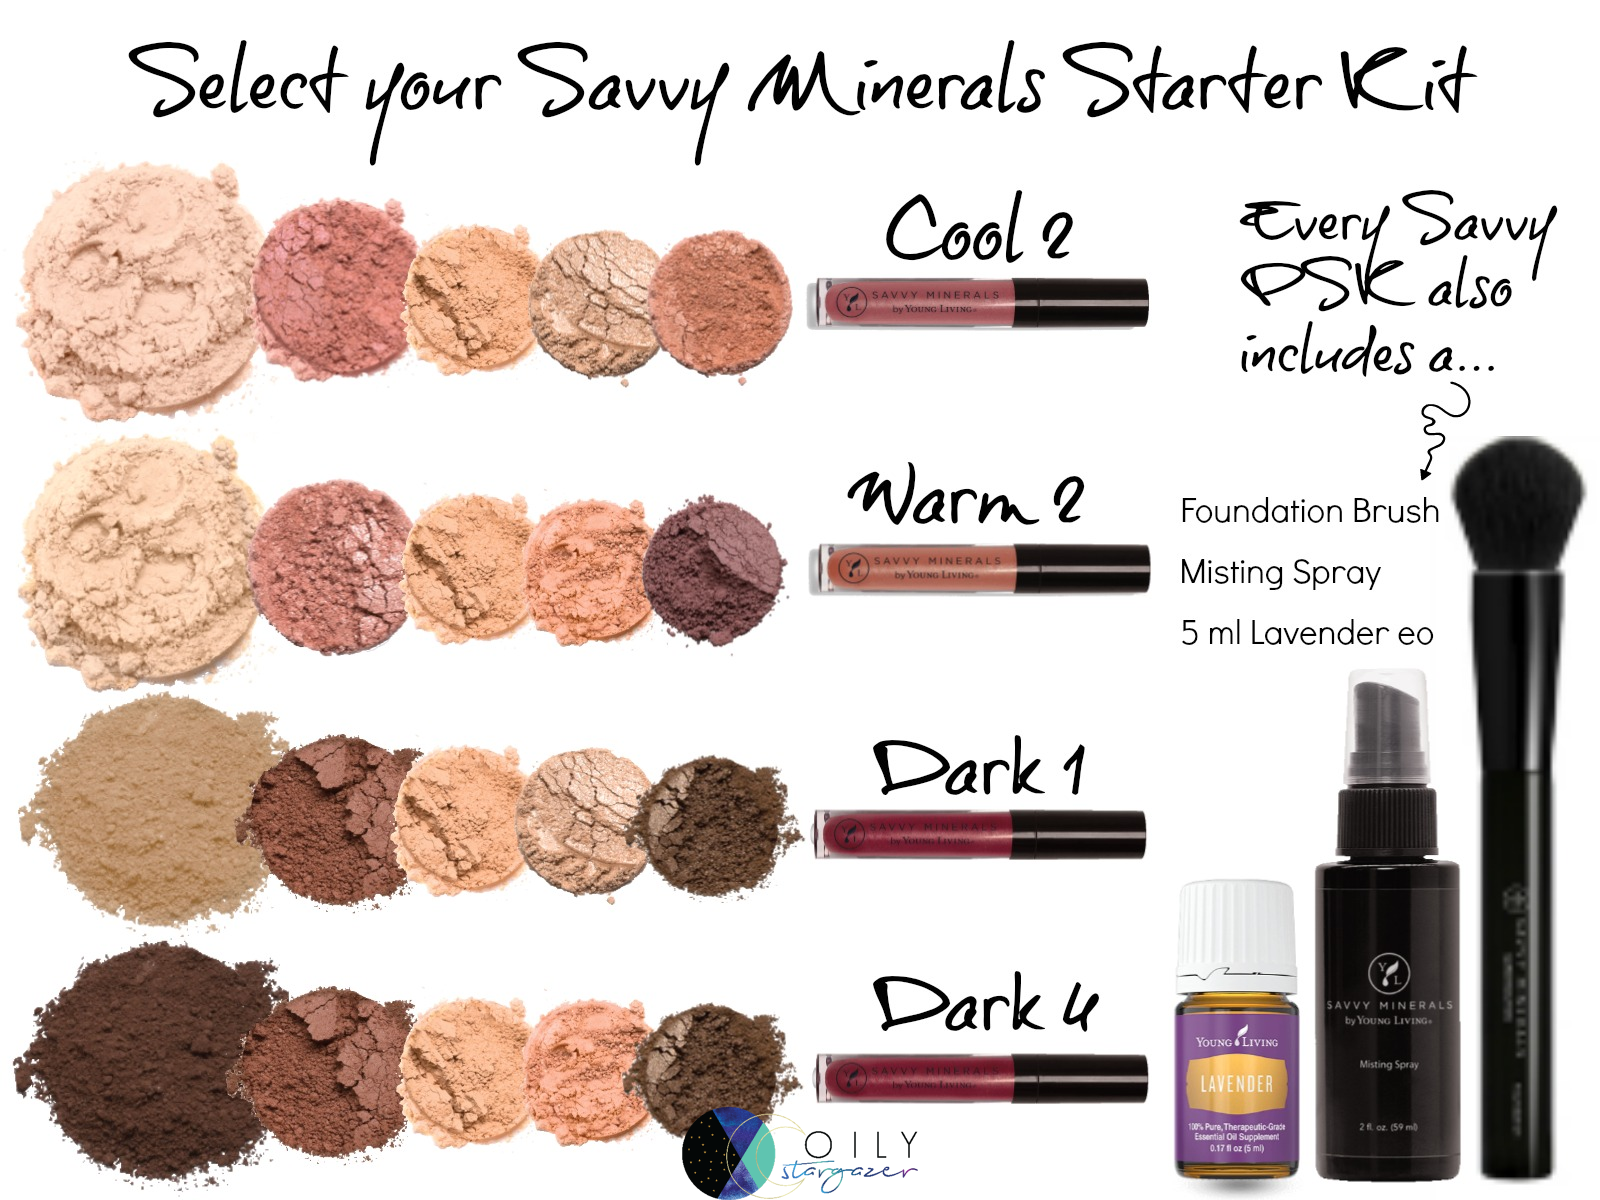 Select your Savvy Minerals Starter Kit and get ready to